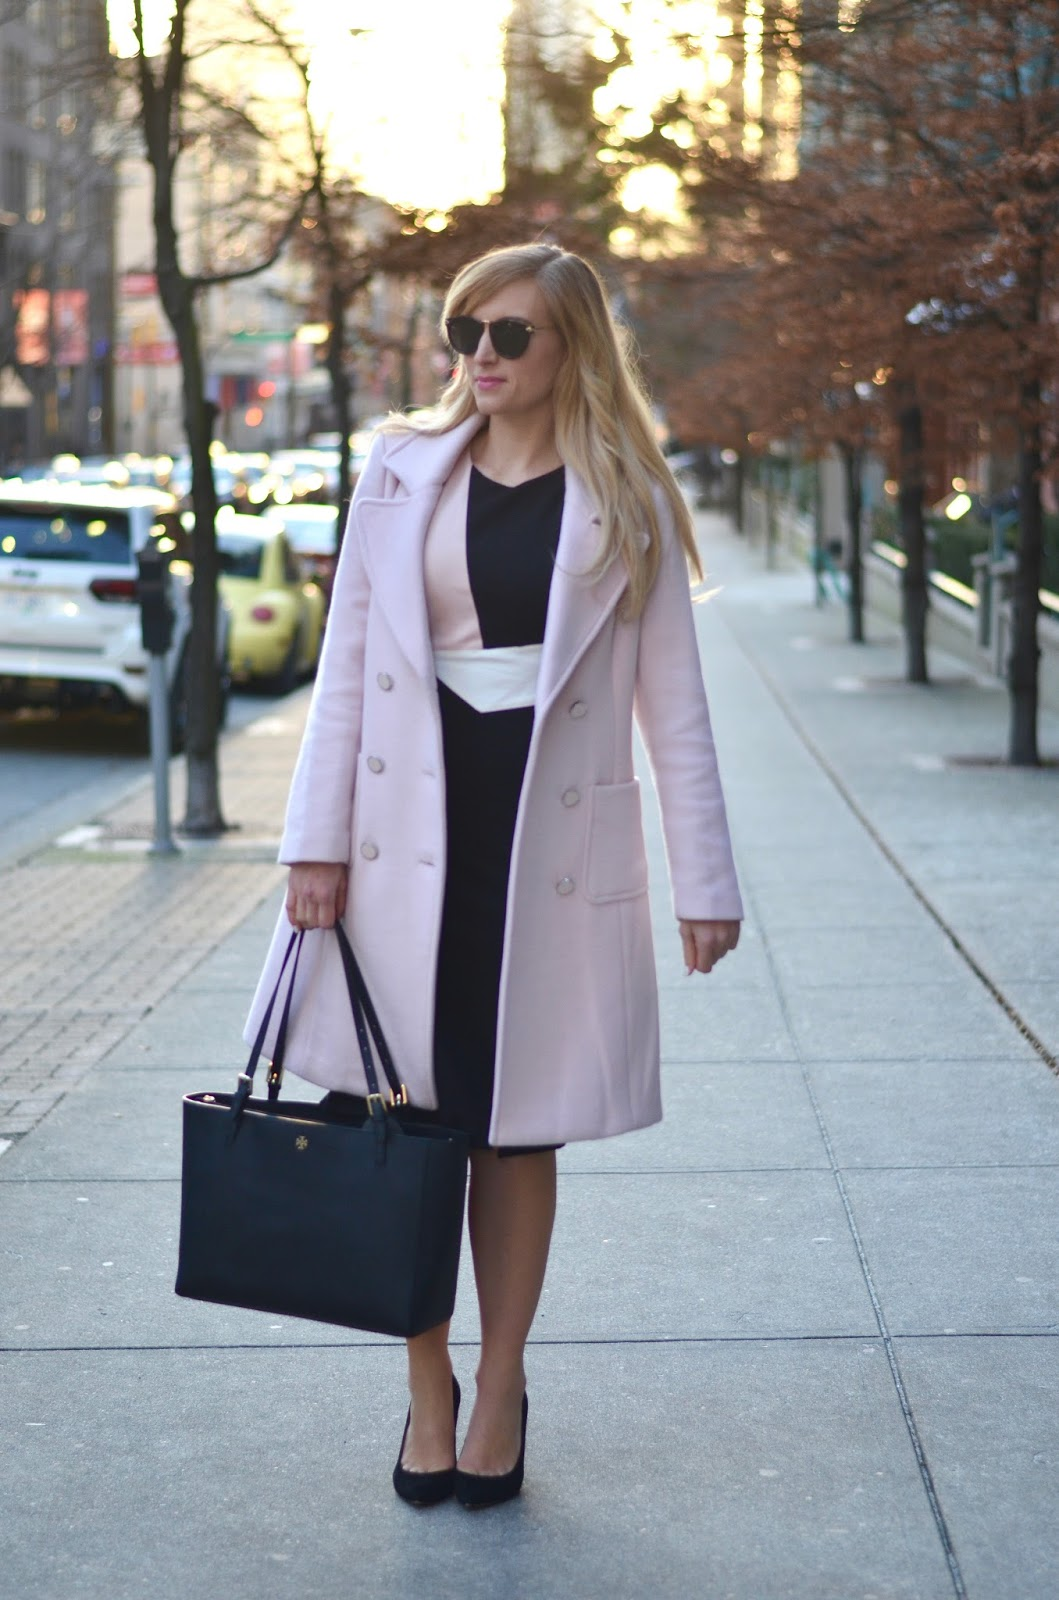 how to dress for work in the winter